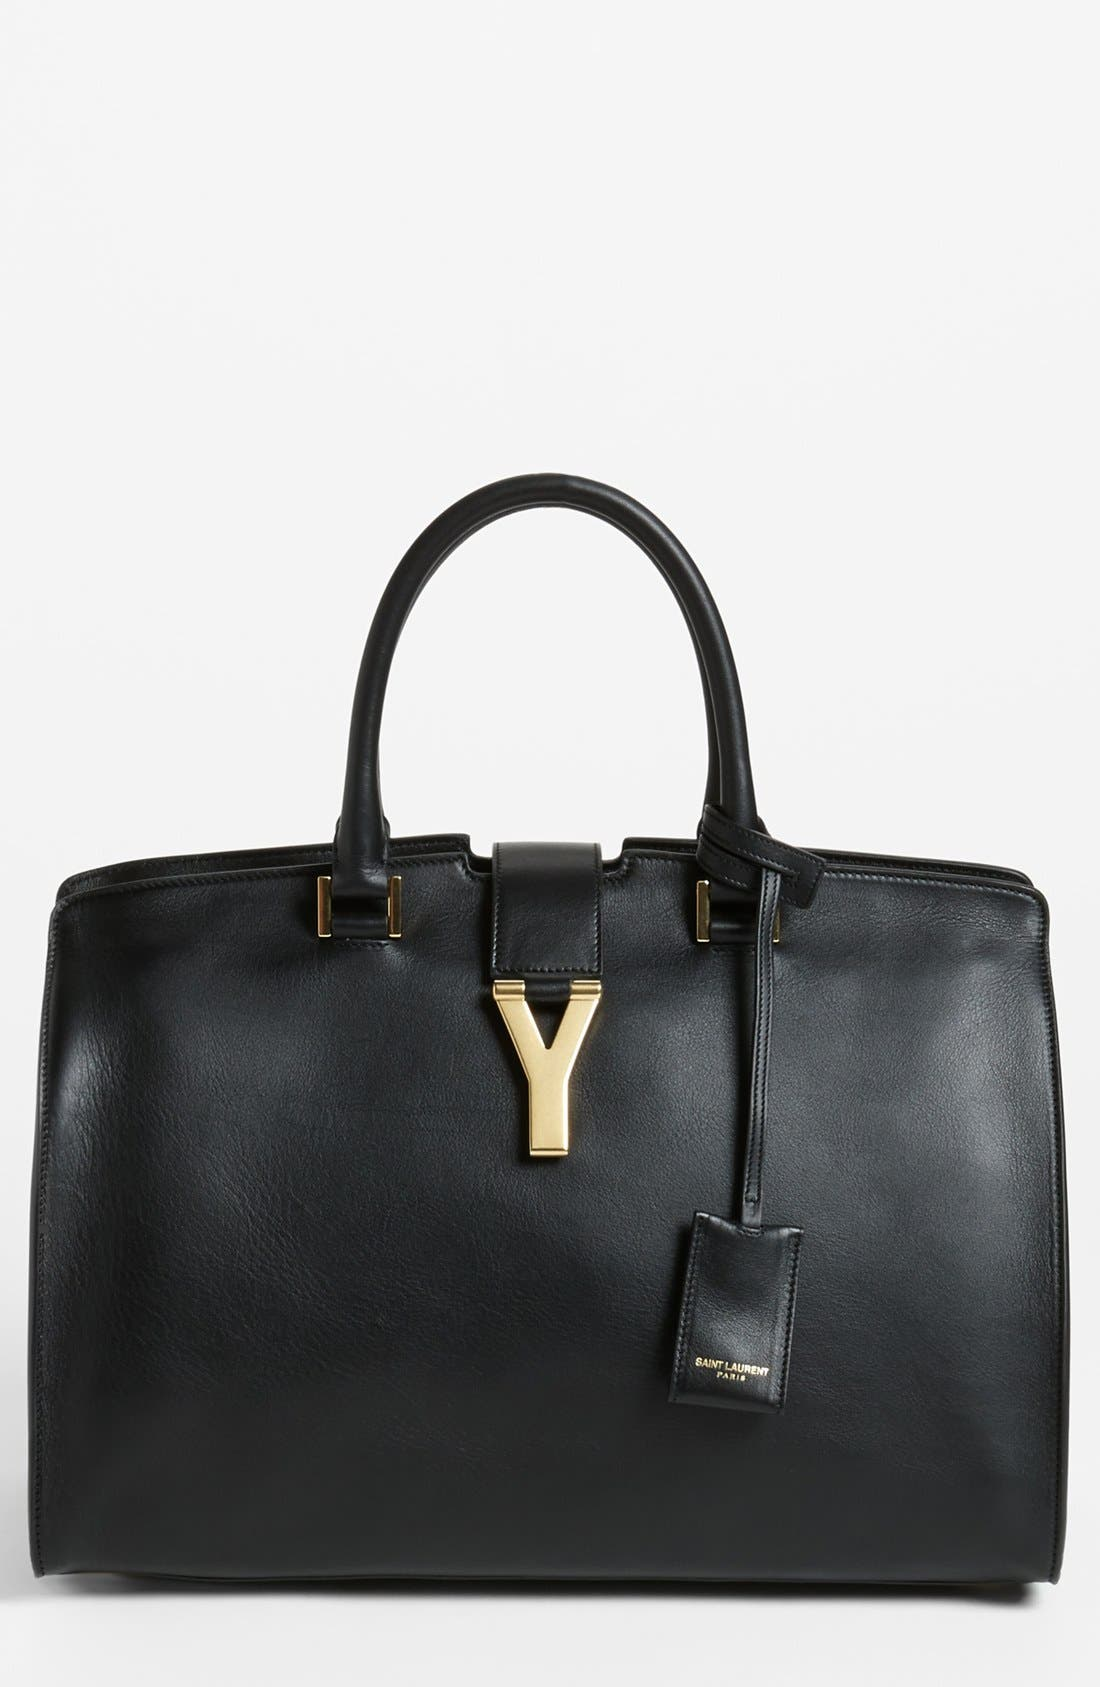 Alternate Image 1 Selected - Saint Laurent 'Ligne Y' Leather Satchel